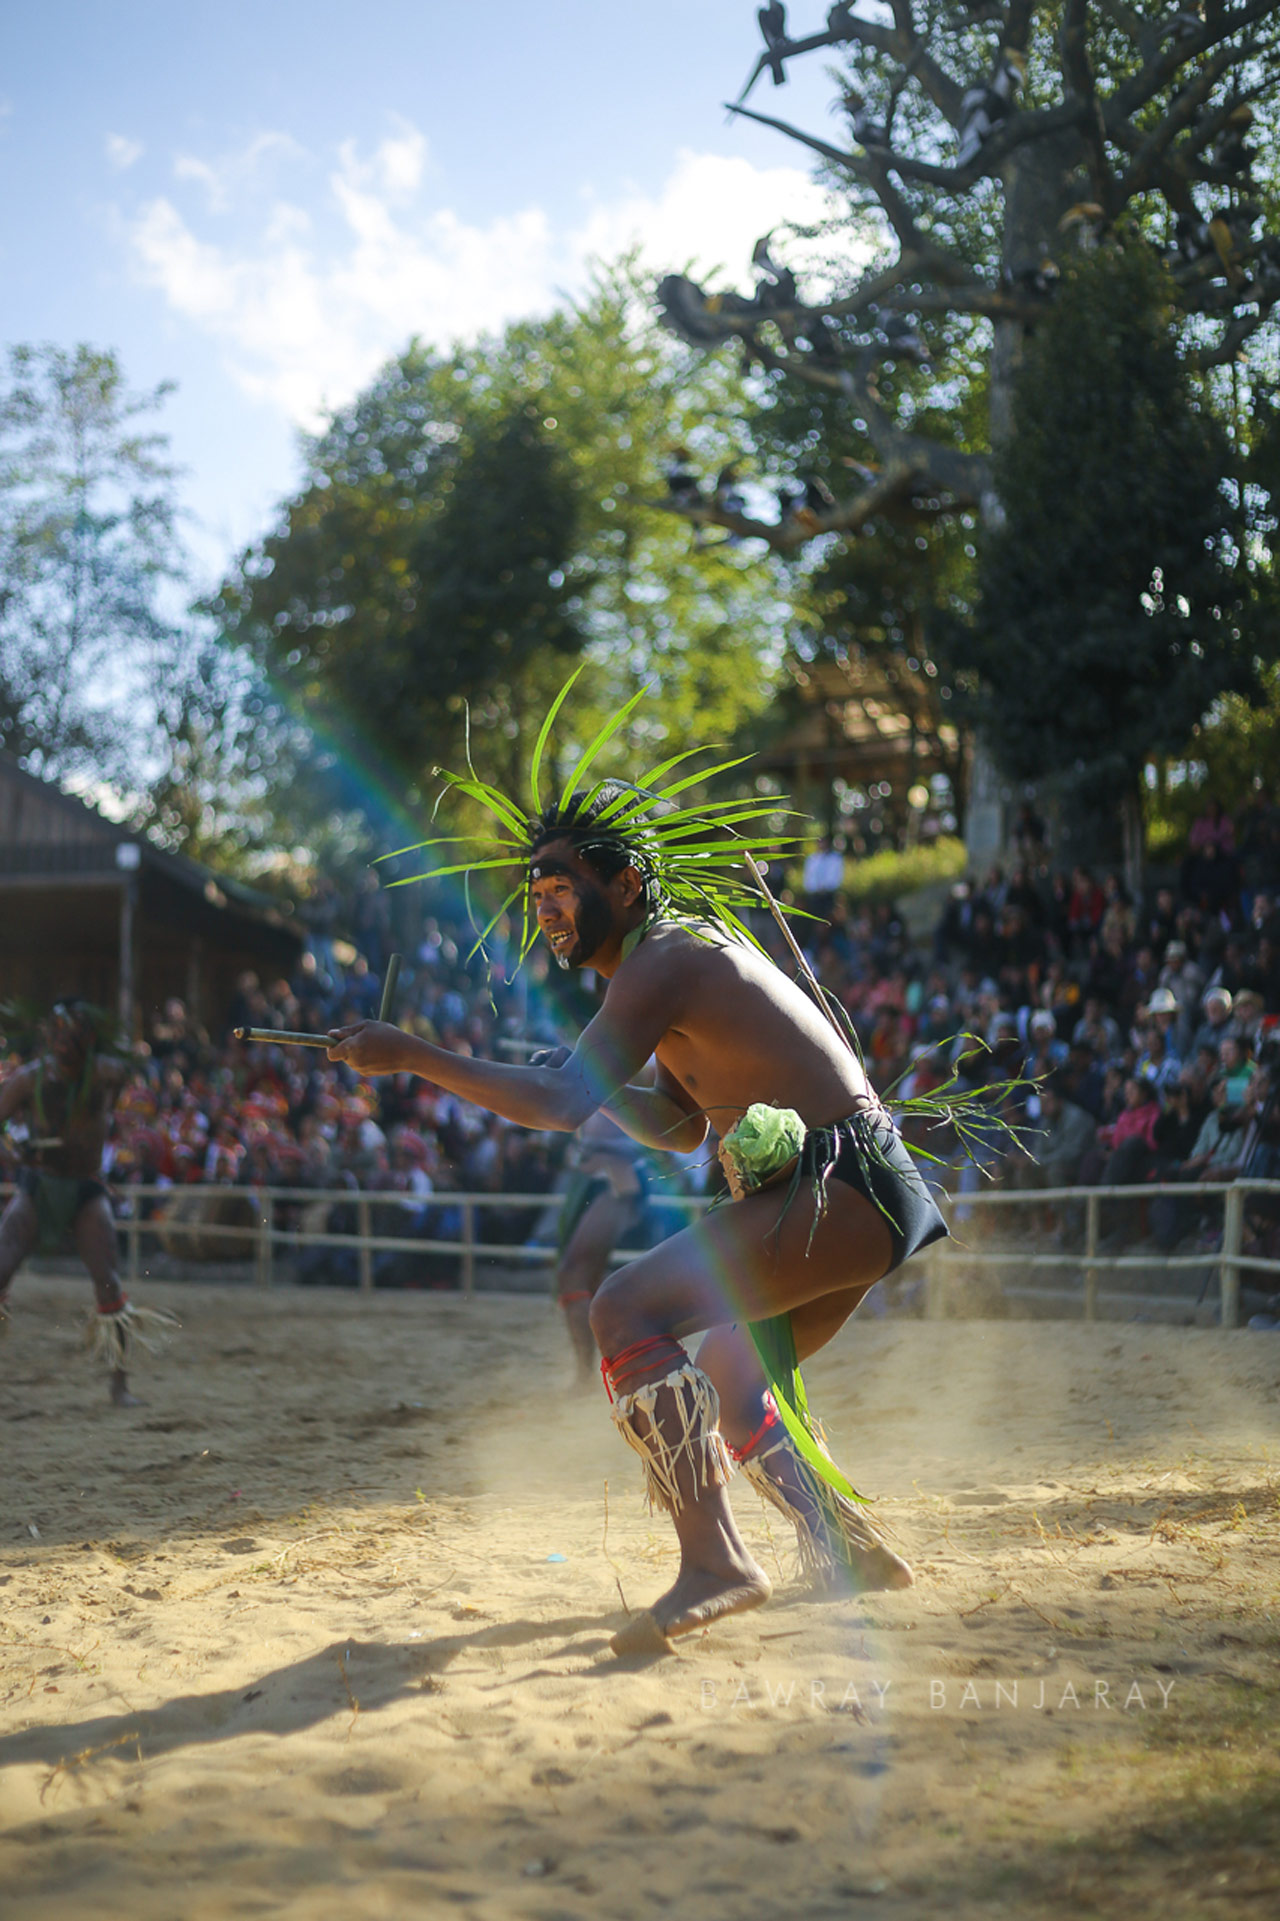 A performer attaching his opponent at the Hornbill last year